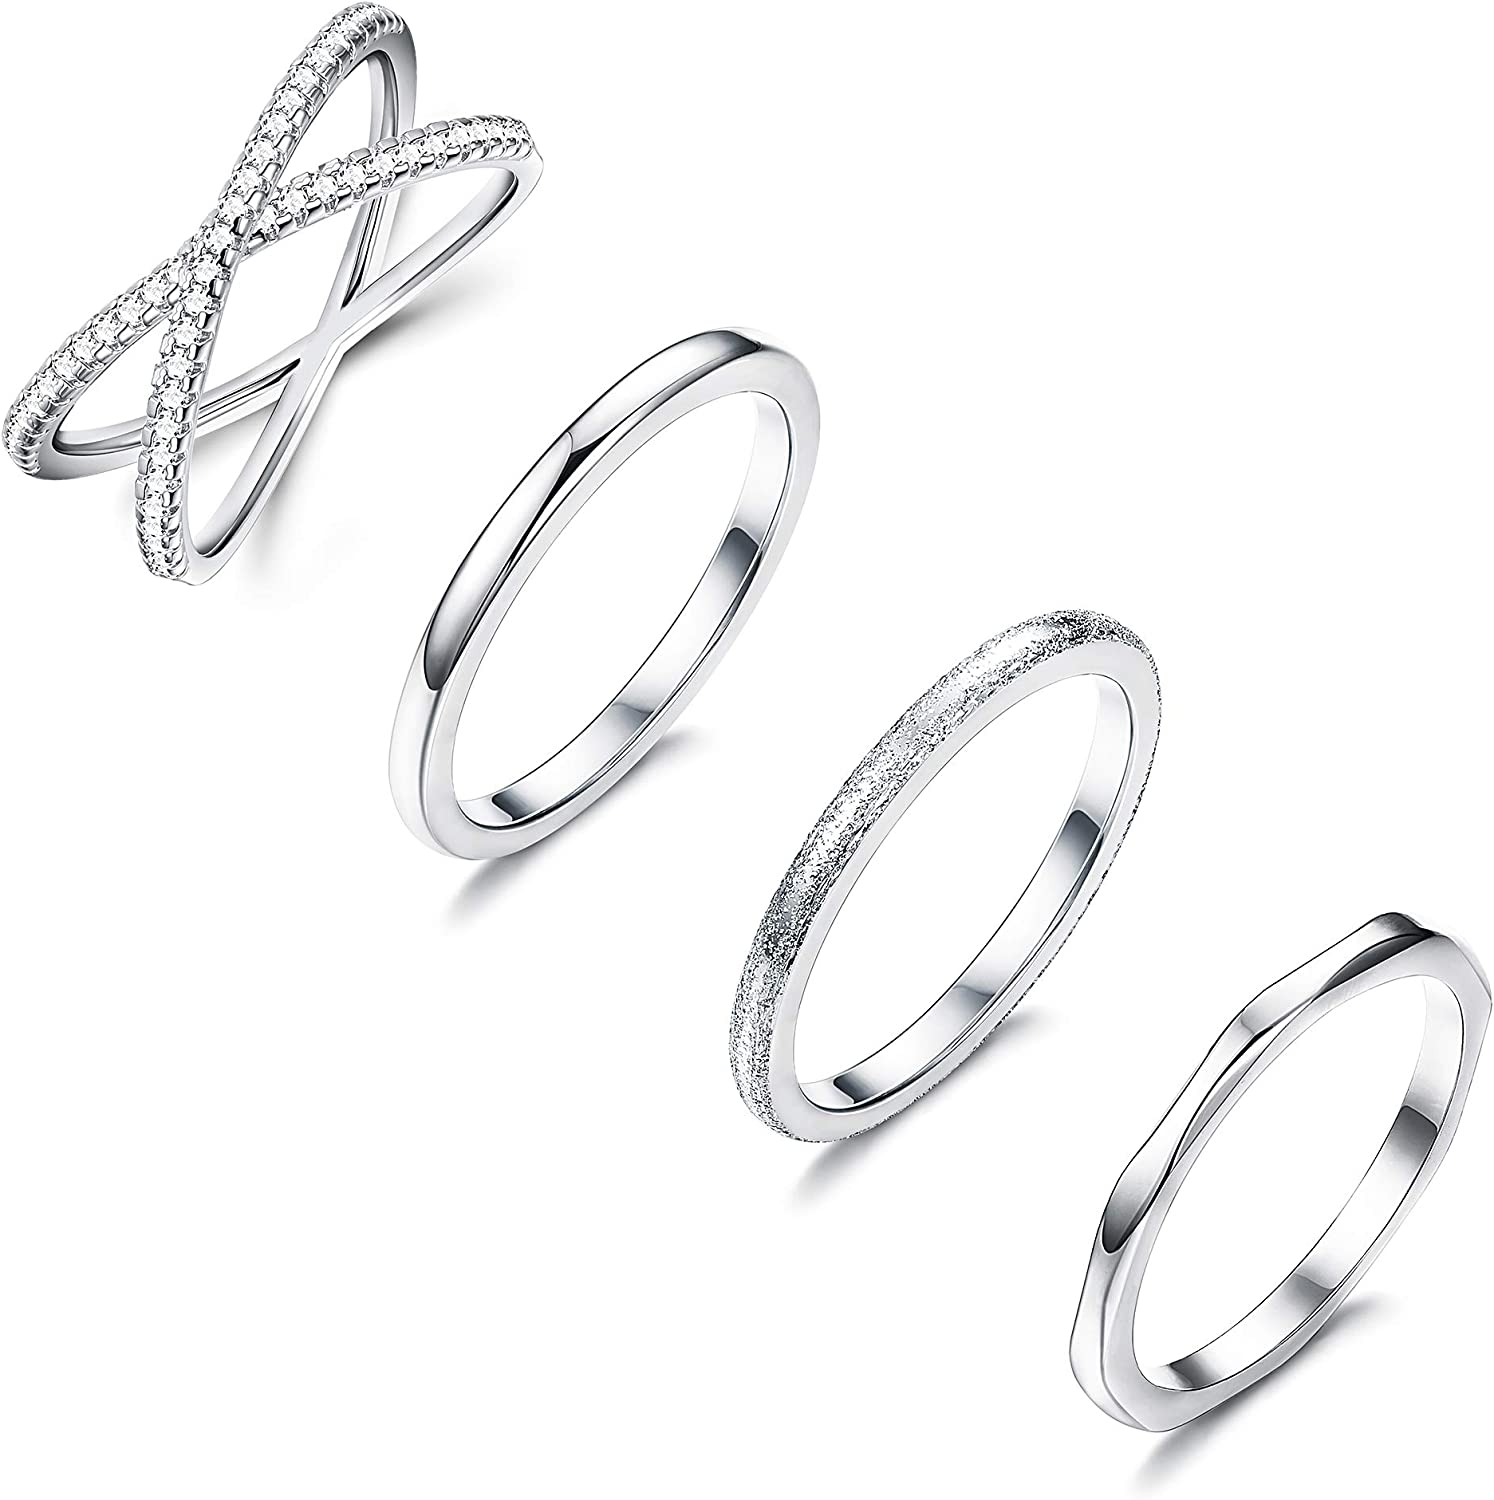 Amazon Com Loyallook 4pcs Stainless Steel Stacking Wedding Band